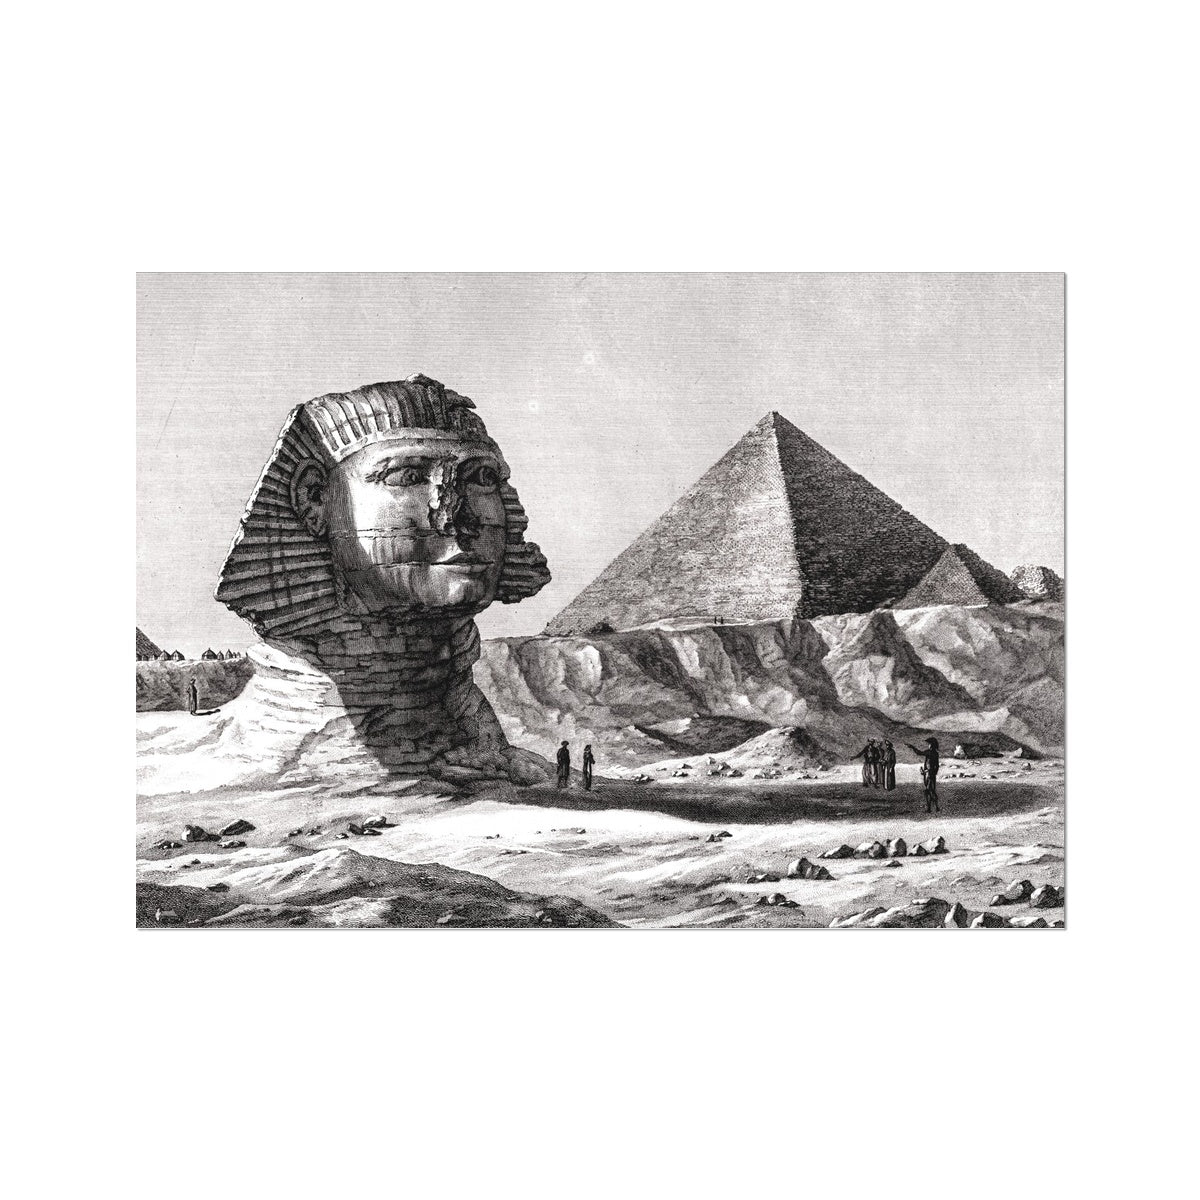 View of the Sphinx - Memphis Egypt -  Etching Paper Print